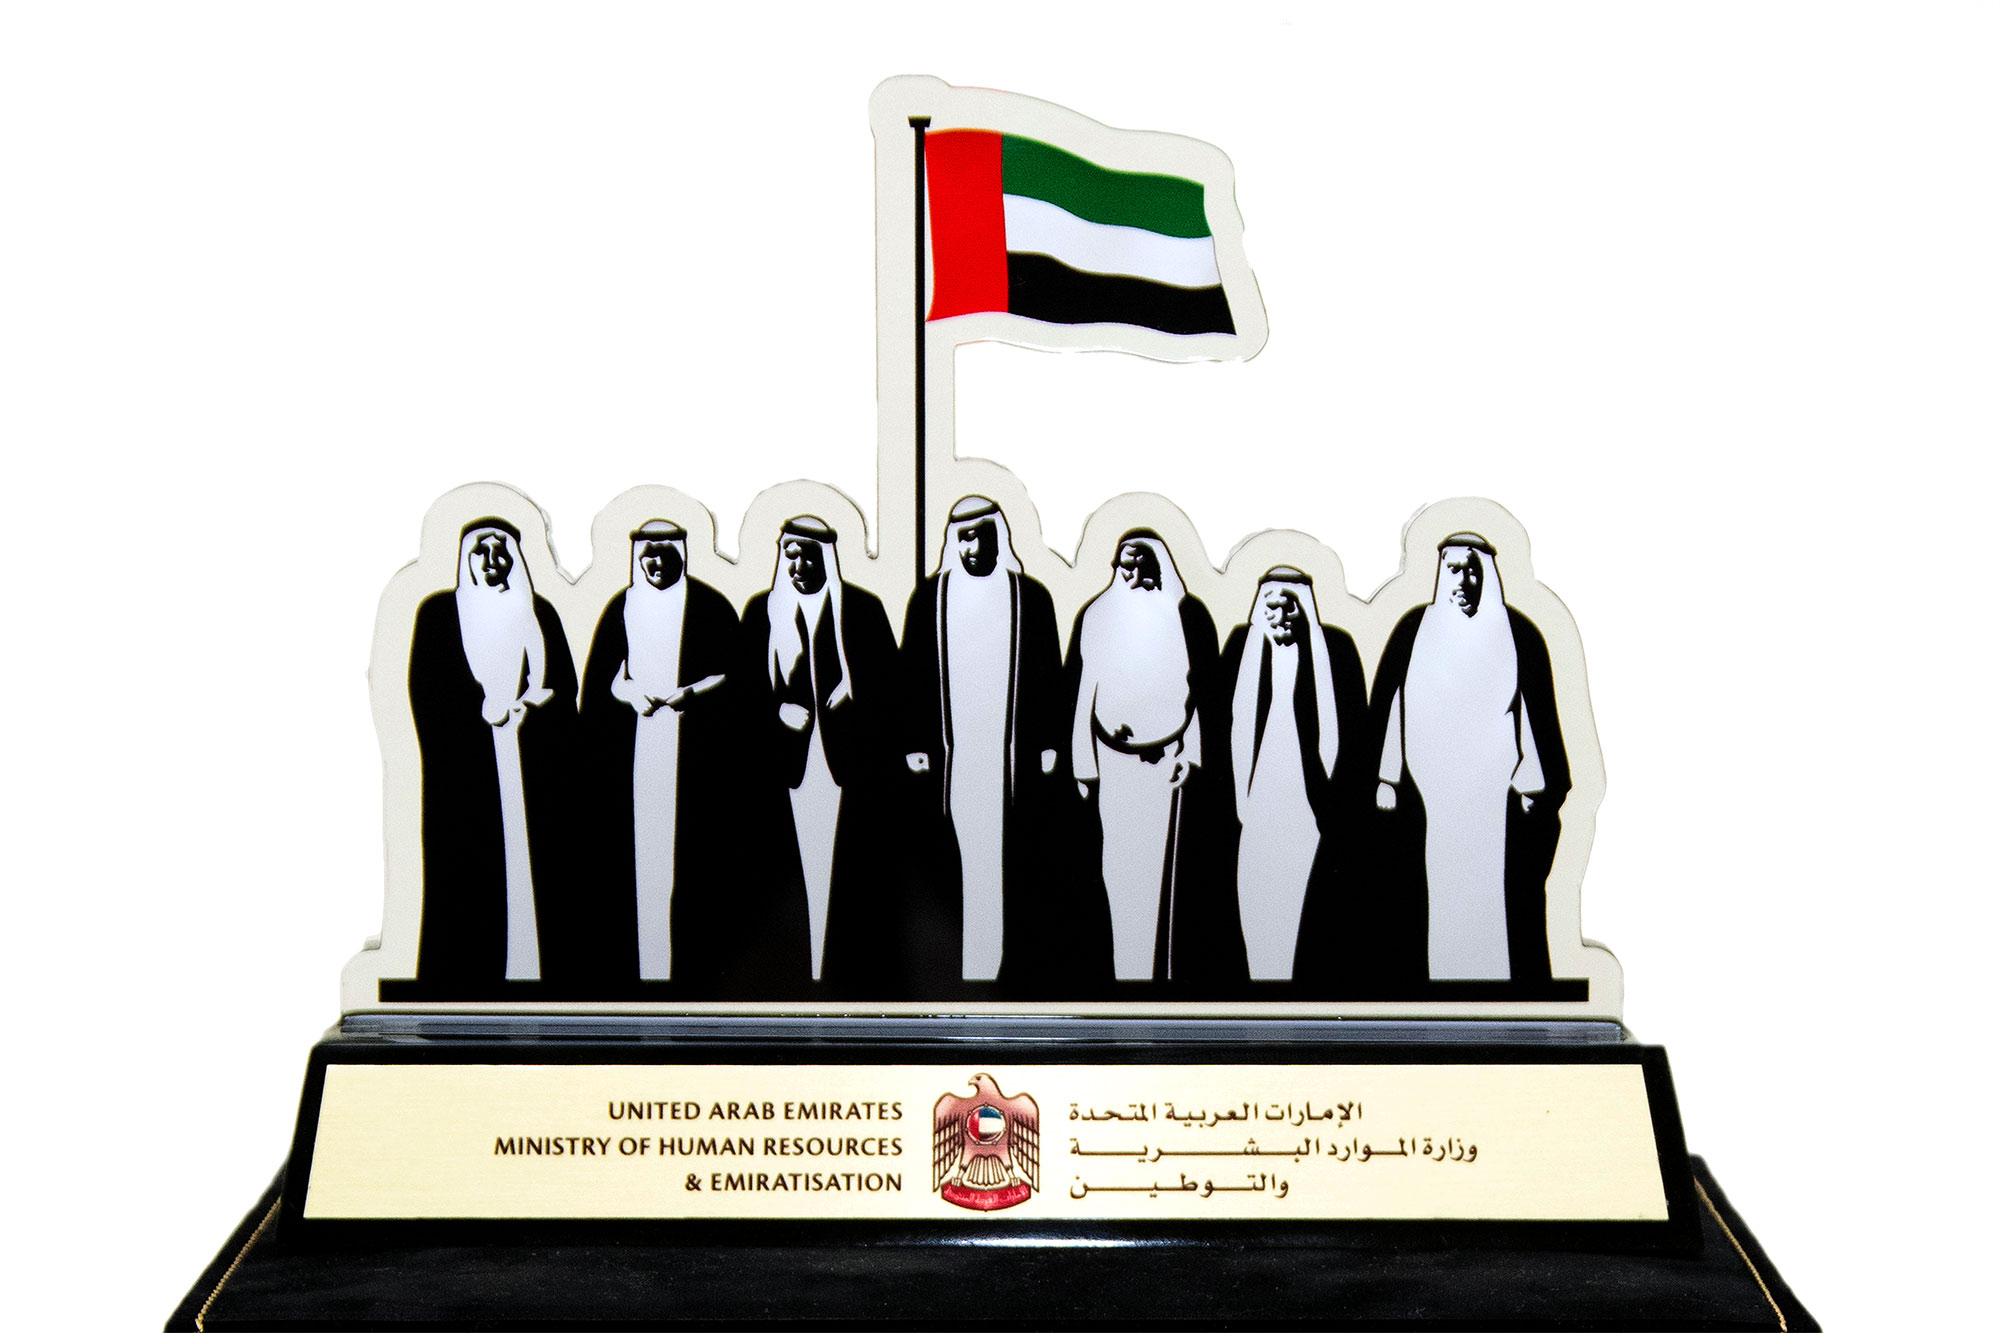 Mgh Awarded From United Arab Emirates Ministry Of Human